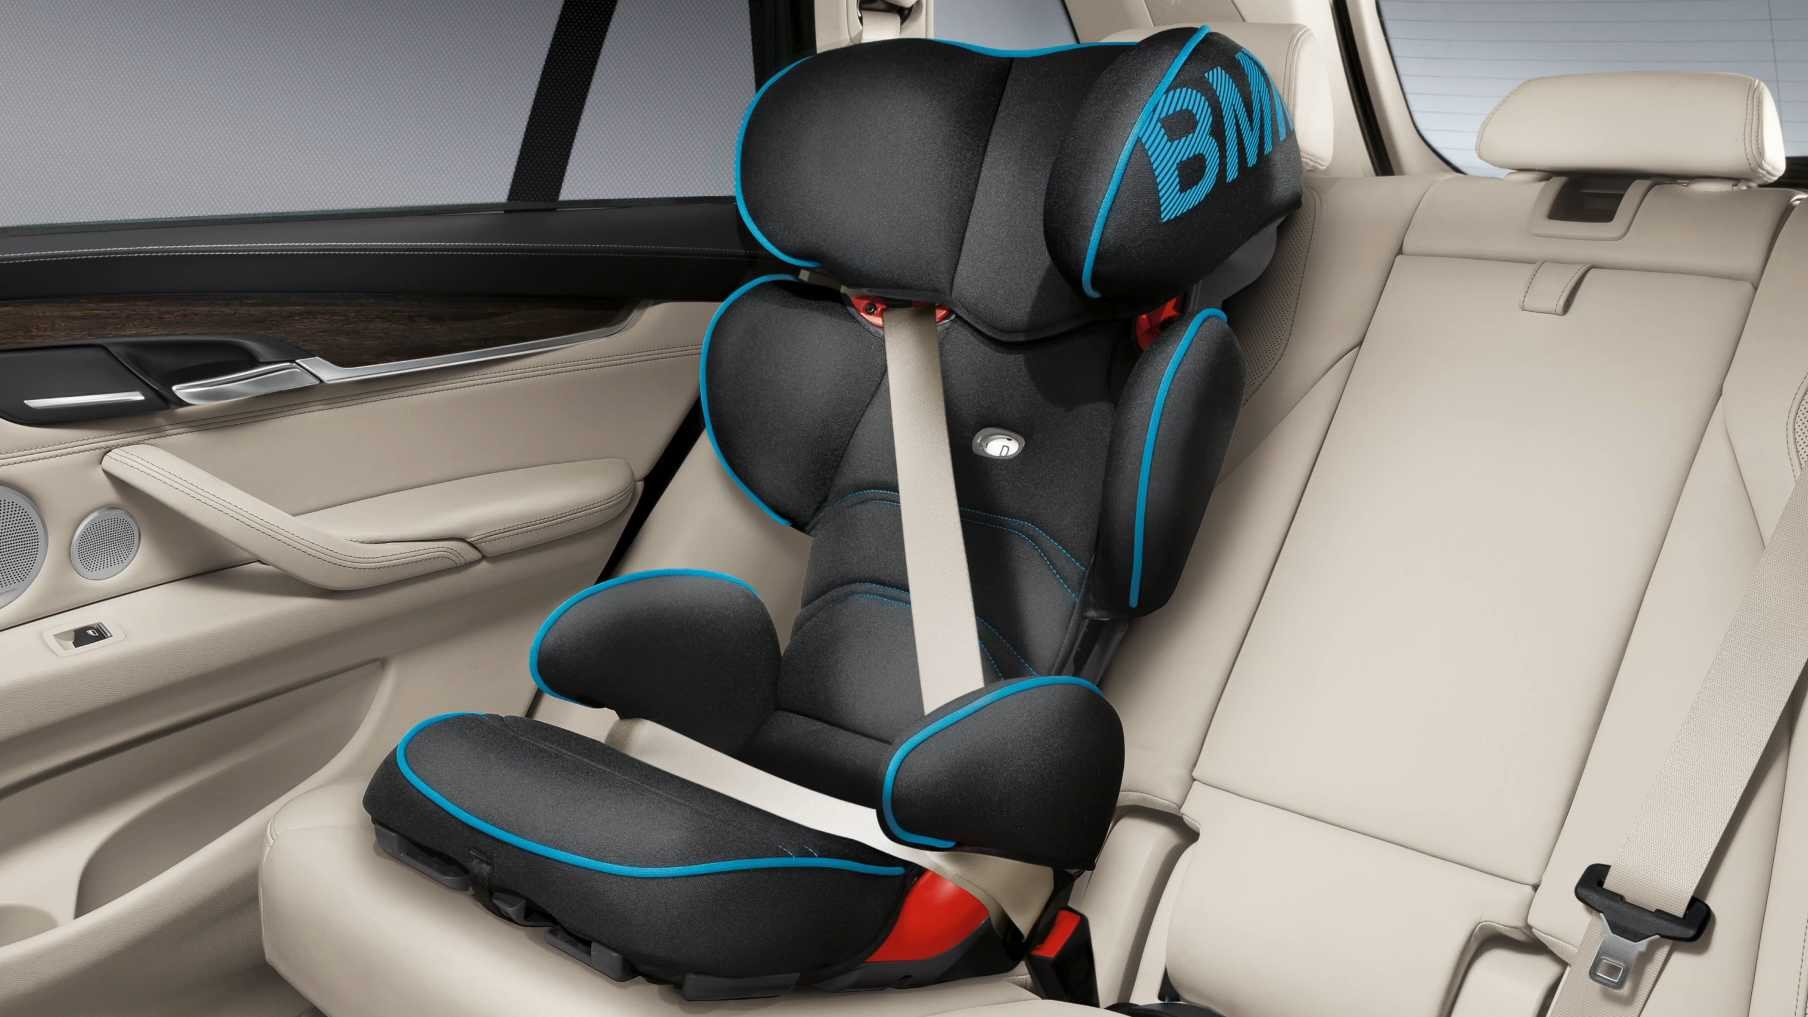 online clip bmw baby seat 0+ with isofix base. bmw junior seat 2/3